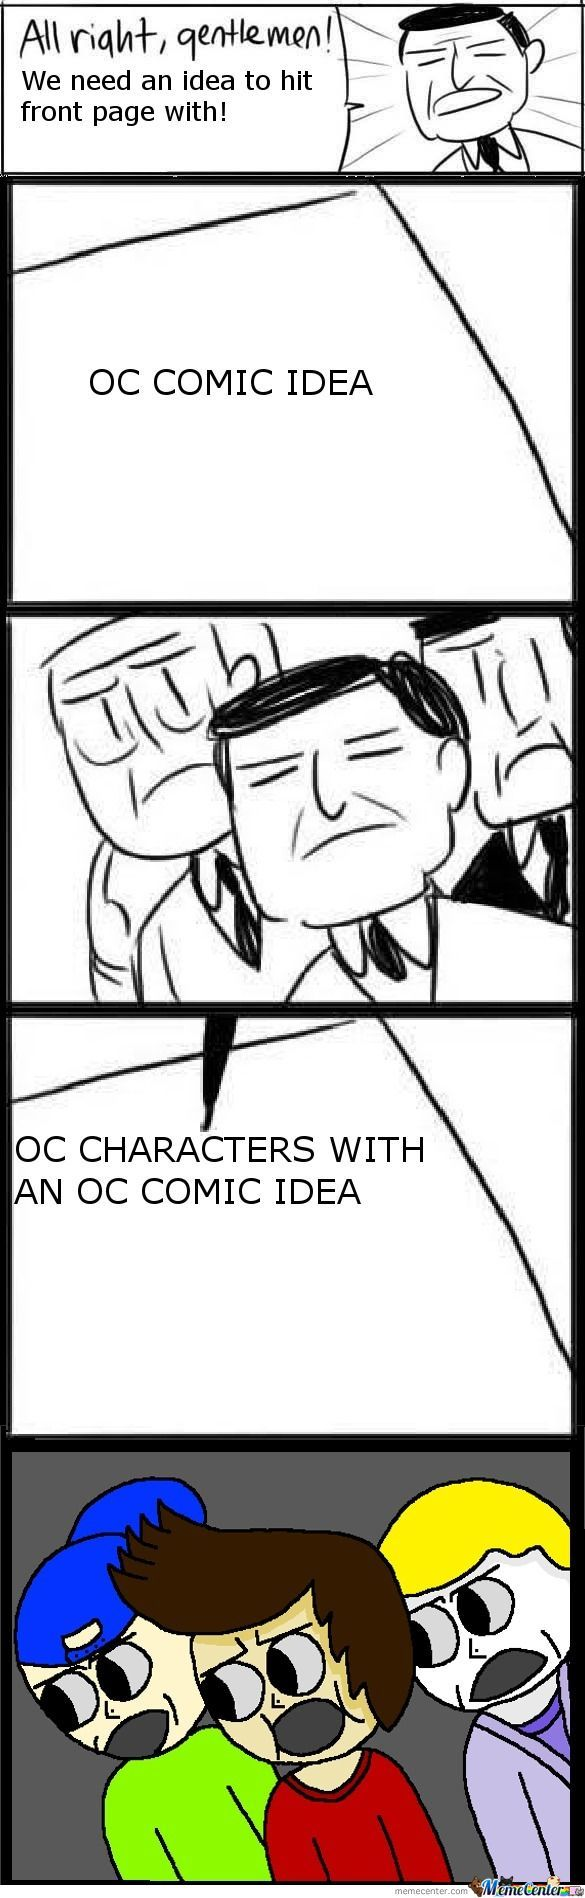 Oc Comics 'n Shit